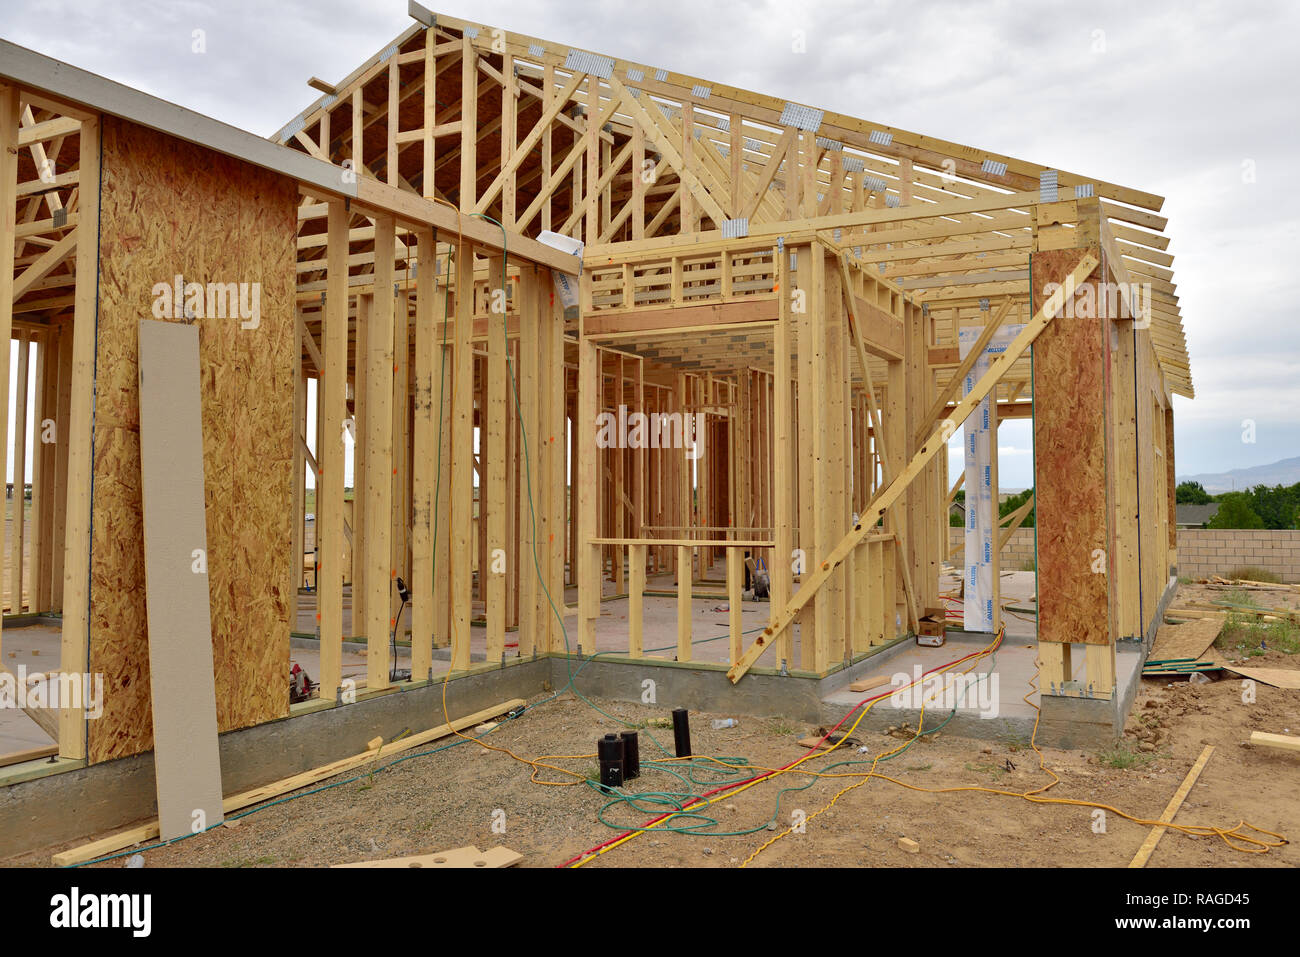 New wood frame house construction in USA, development of residential suburban site - Stock Image